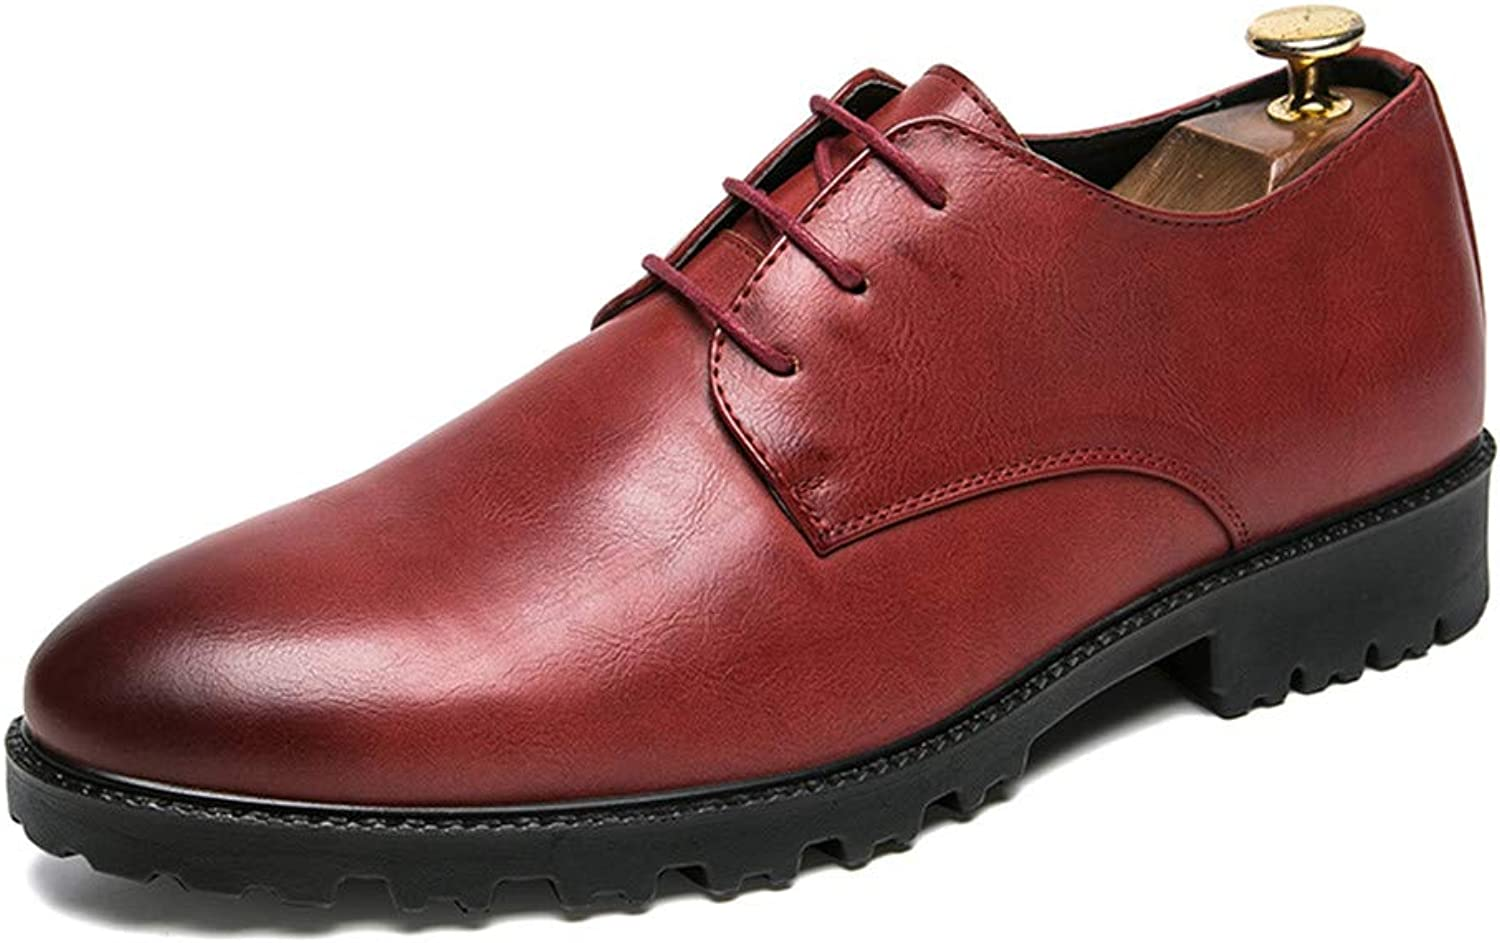 Z.L.F shoes Men's Business Oxford Casual Simple British Style Formal shoes Leather shoes